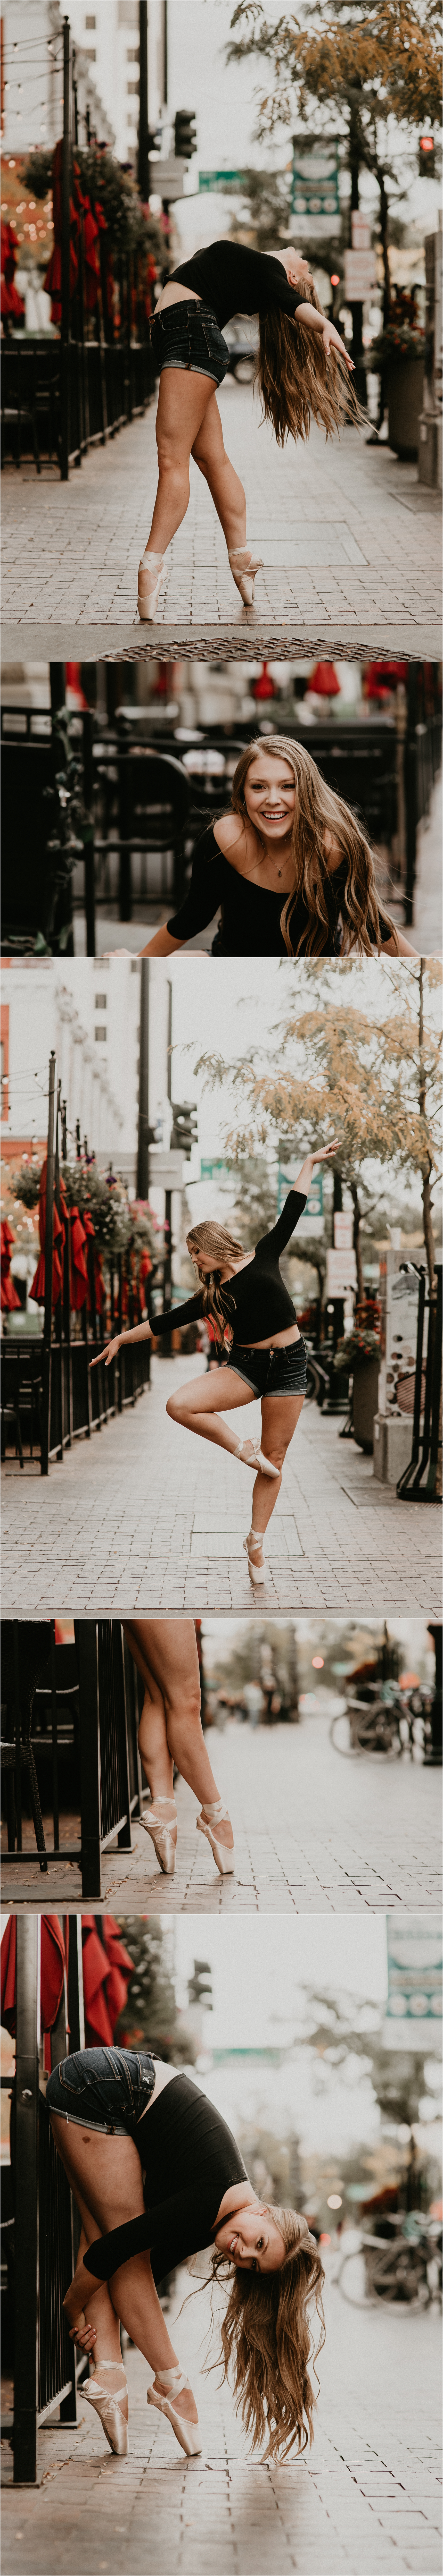 Boise Senior Photographer Makayla Madden Photography Senior Girl Capital High School Kailee Roberts Urban Dancing Senior Pictures Ballet Point Dance Senior Photos